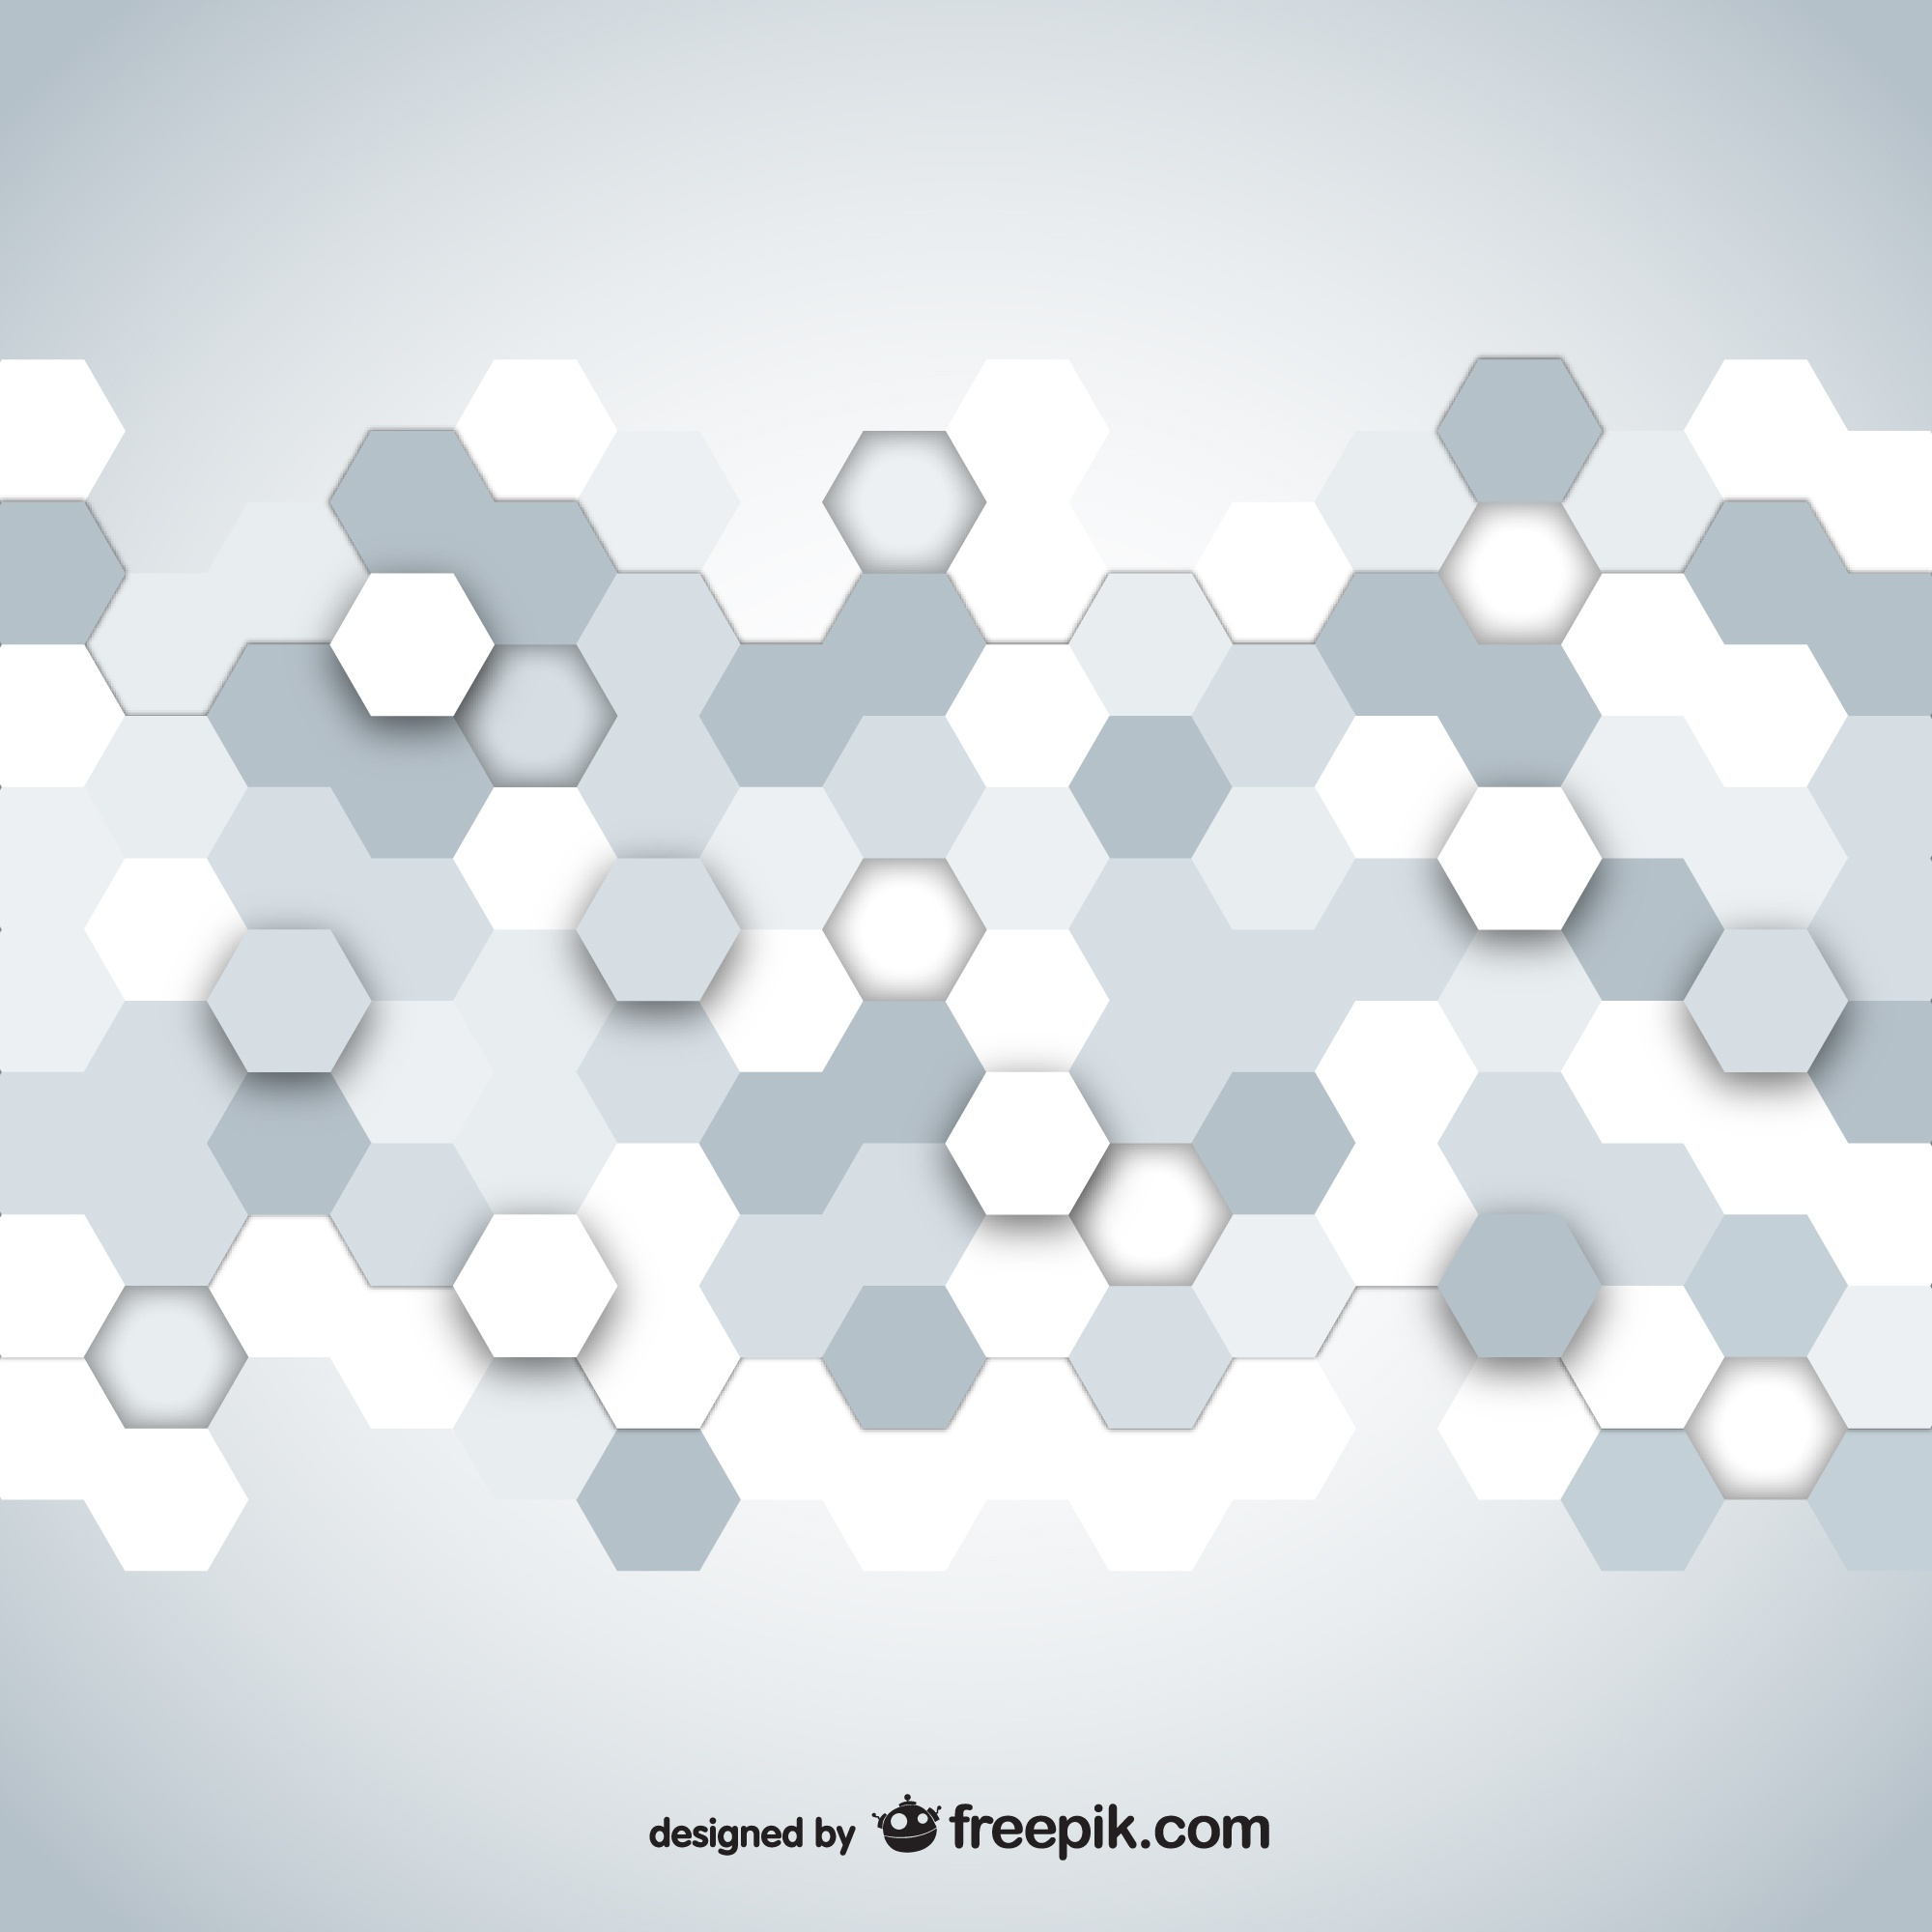 Hexagonal mosaic design